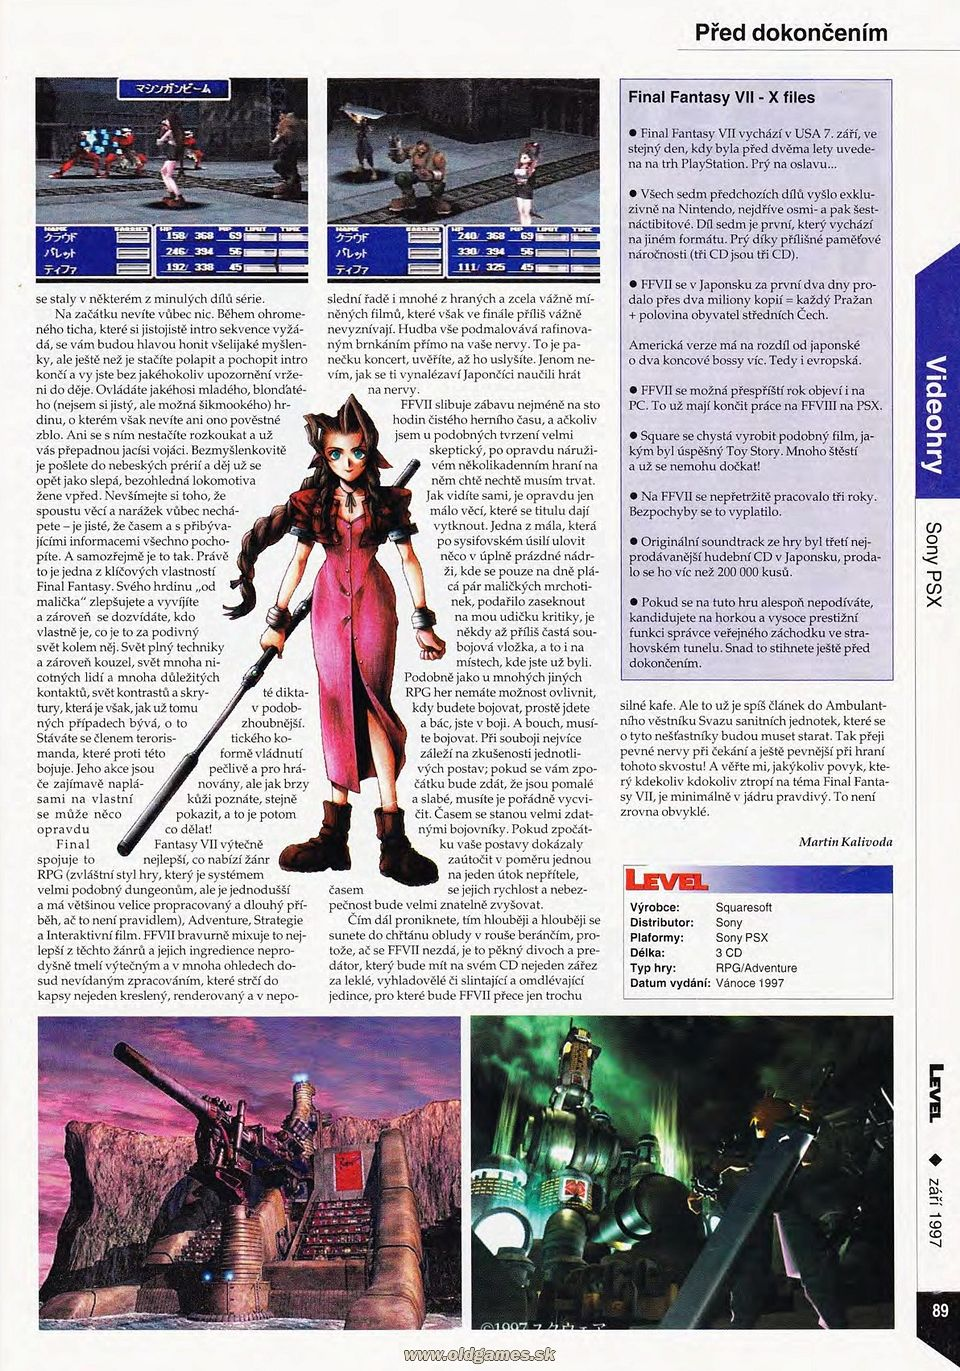 Preview: Final Fantasy VII